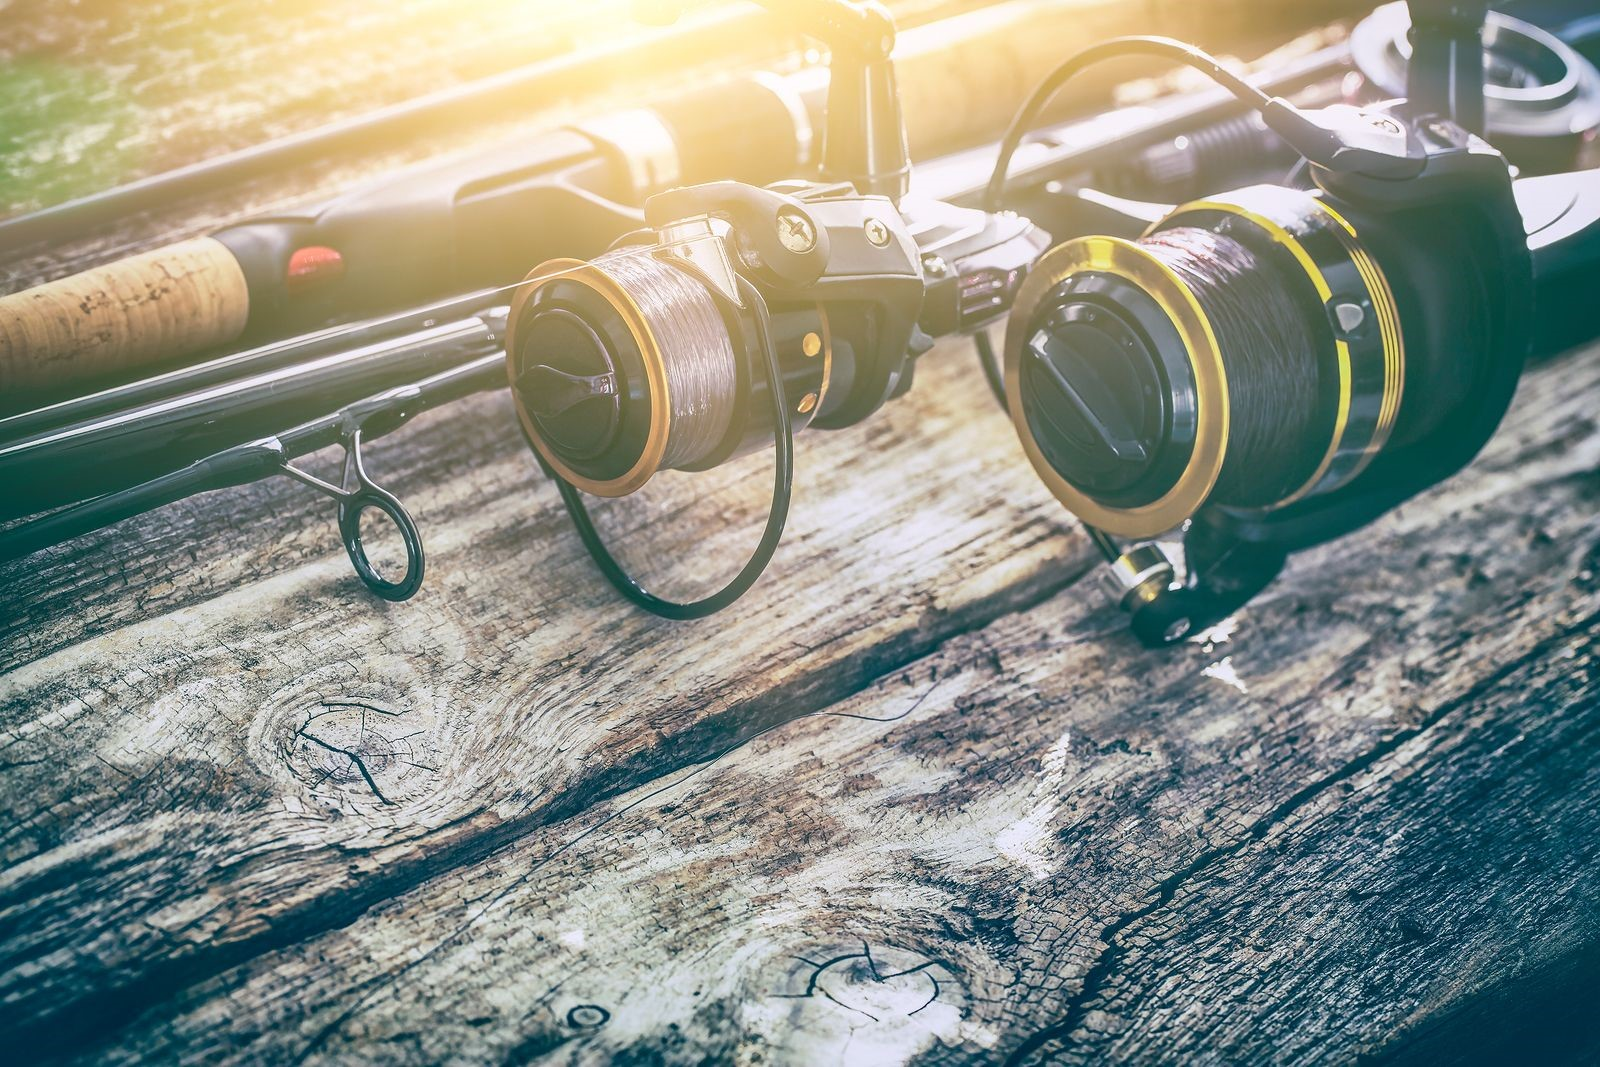 Bait and Tackle Basics Spinning Reel in your First Fishing Excursion